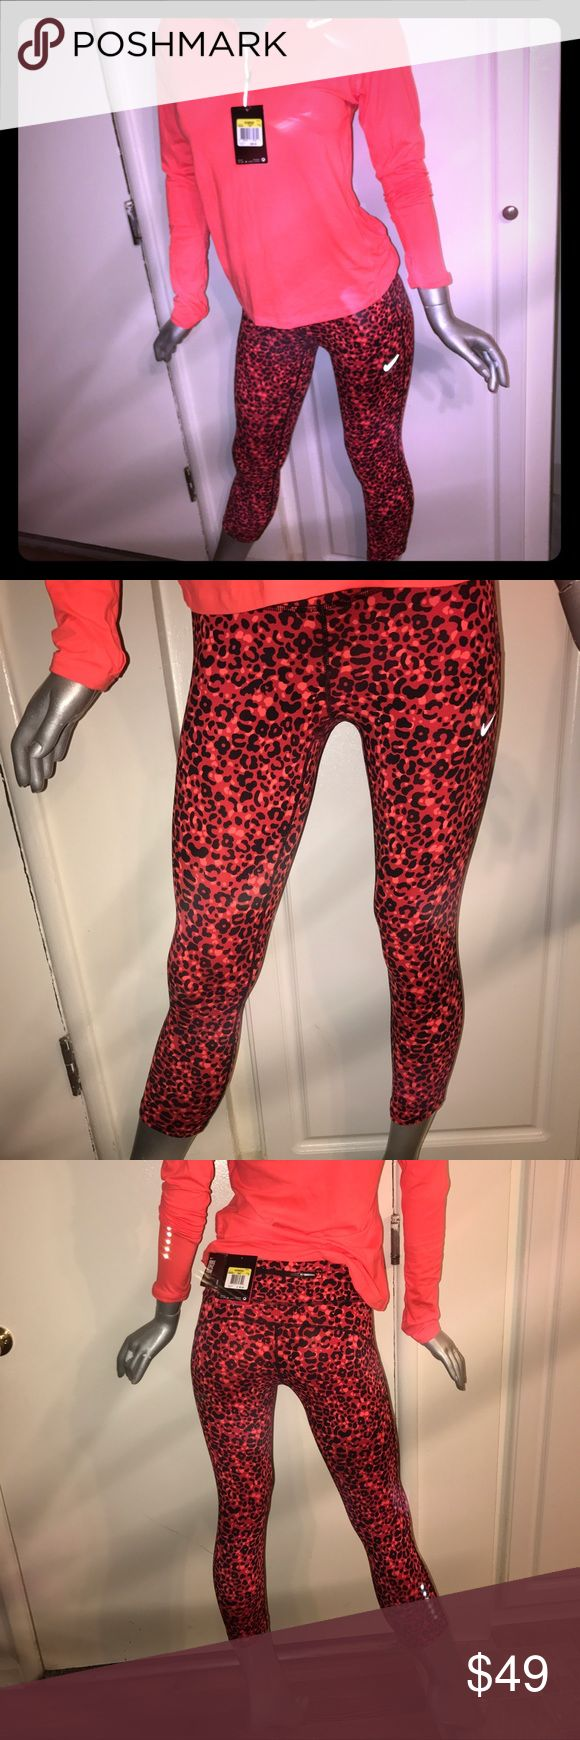 New Nike leopard tight capris Red and black leopard Nike workout tights, new with tags size small. Love them fit comfy but I have too many clothes. Nike Pants Capris